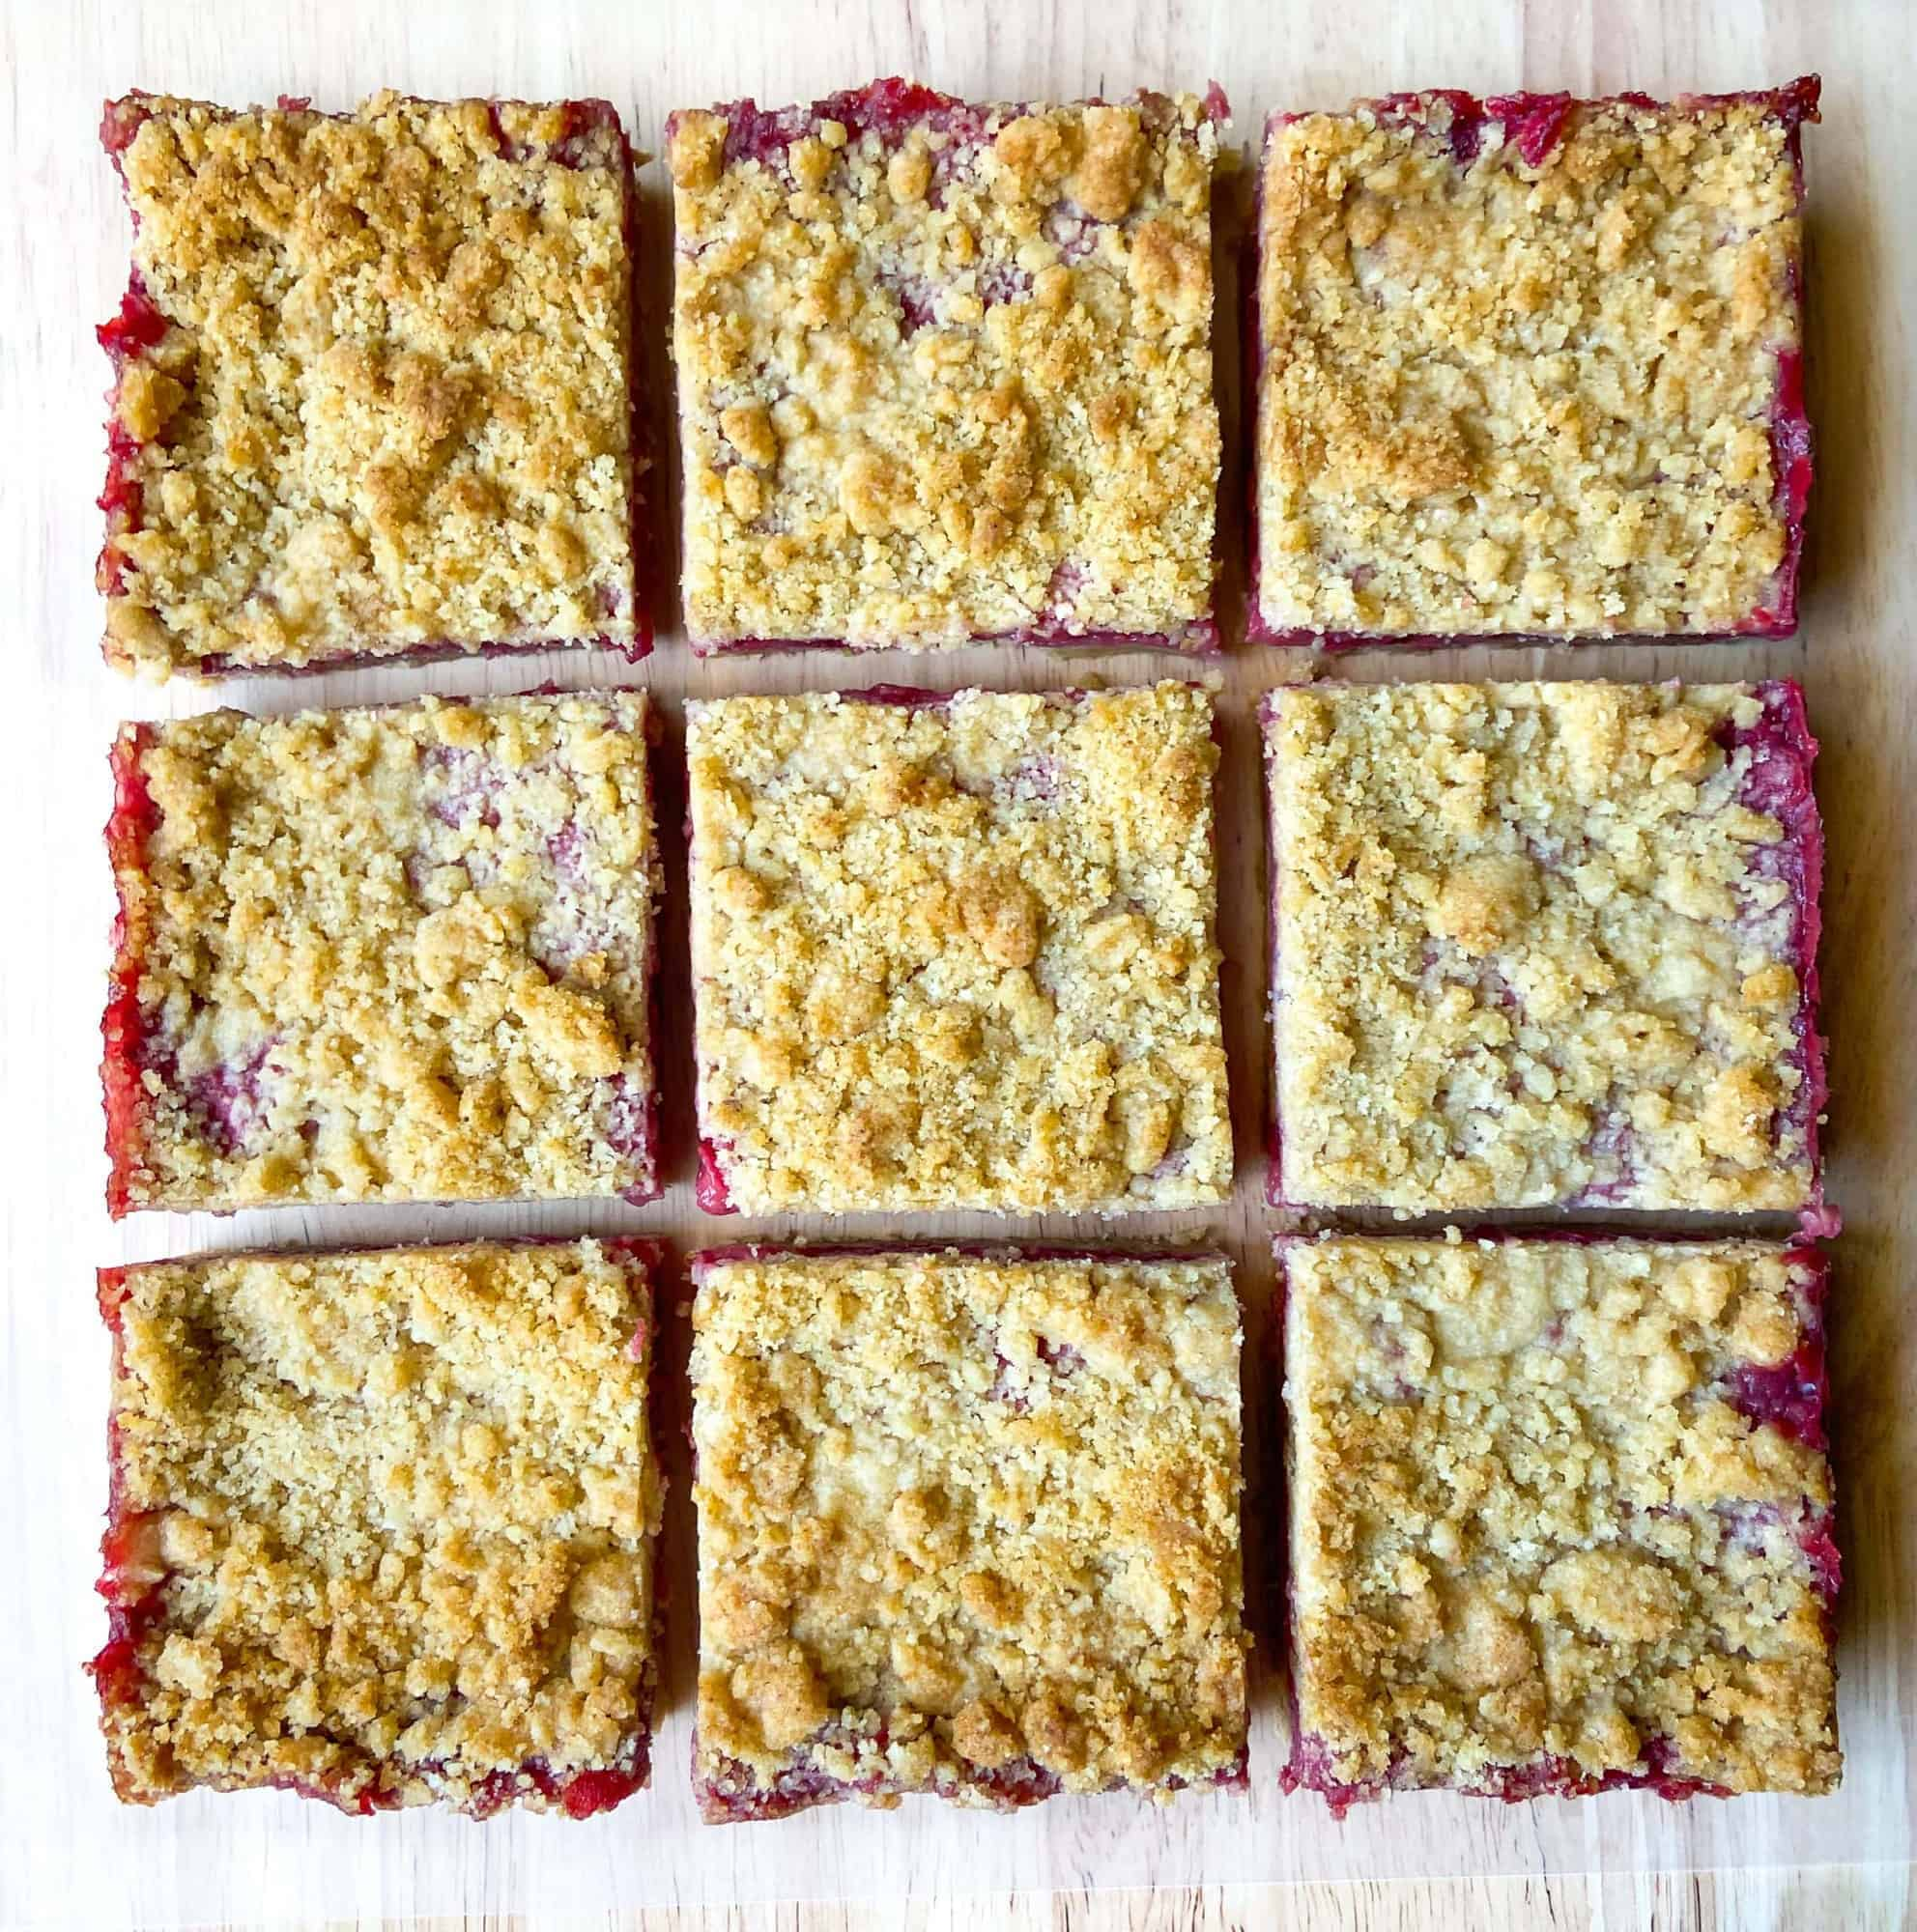 Strawberry bars with crumble on top